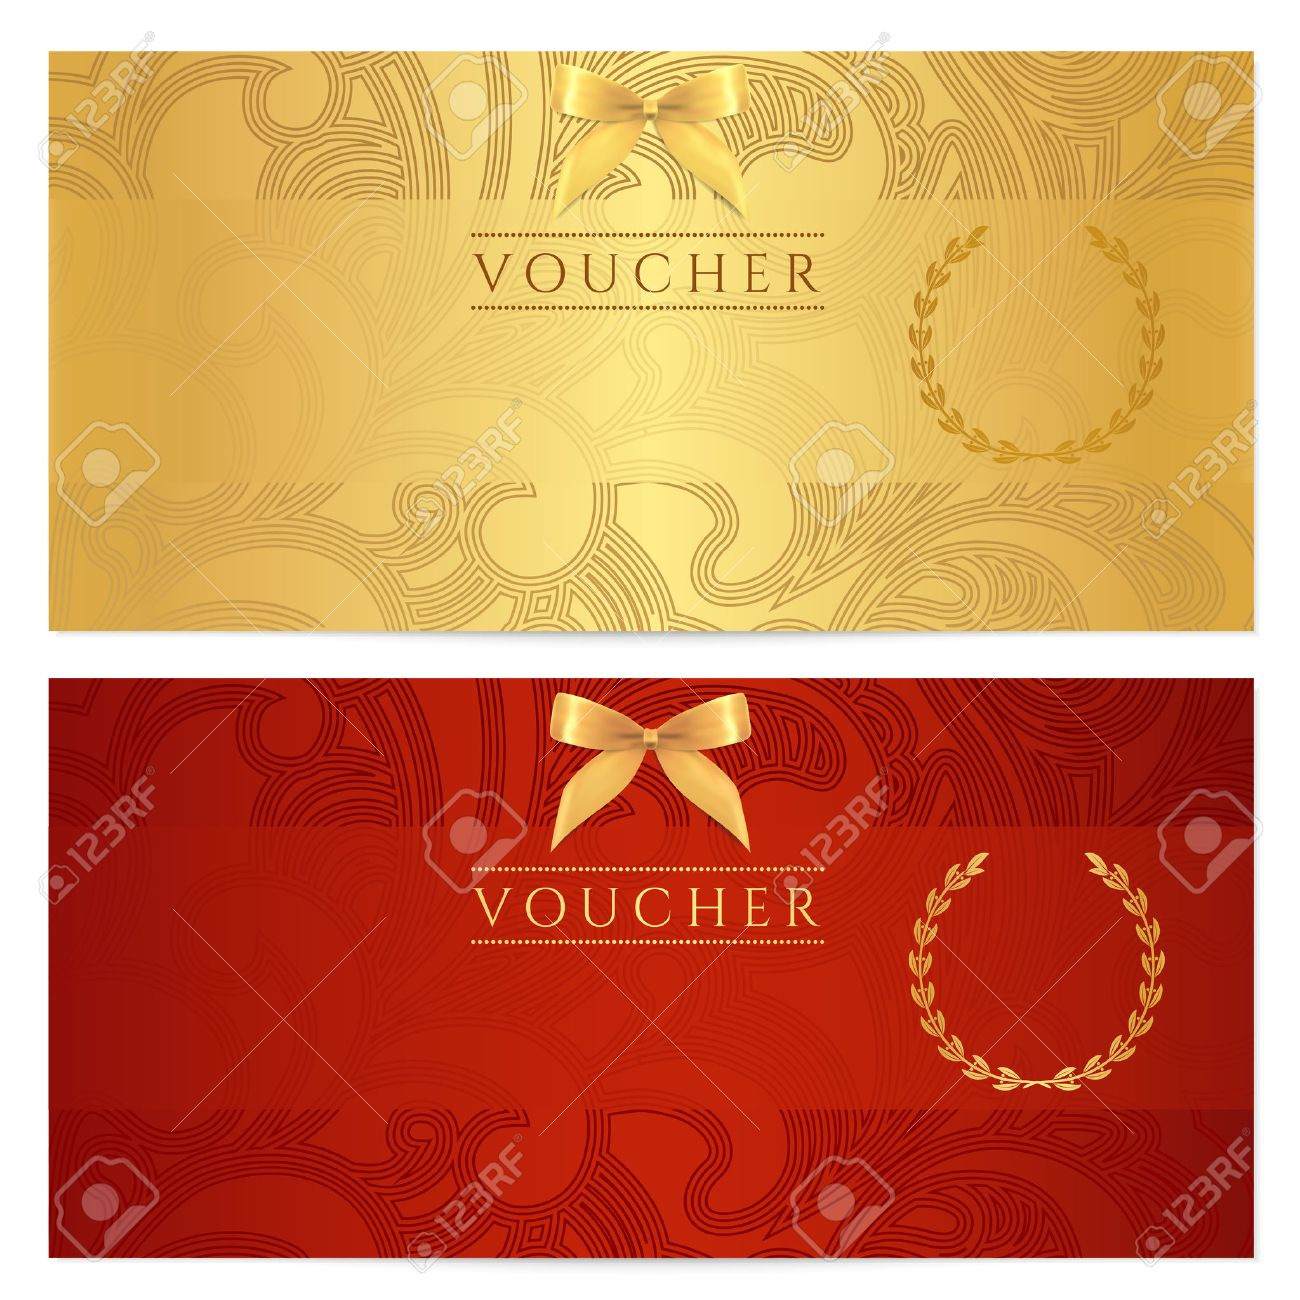 Voucher, Gift certificate, Coupon template Floral, scroll pattern bow, frame Background design for invitation, ticket, banknote, money design, currency, check cheque Red, gold - 22502374